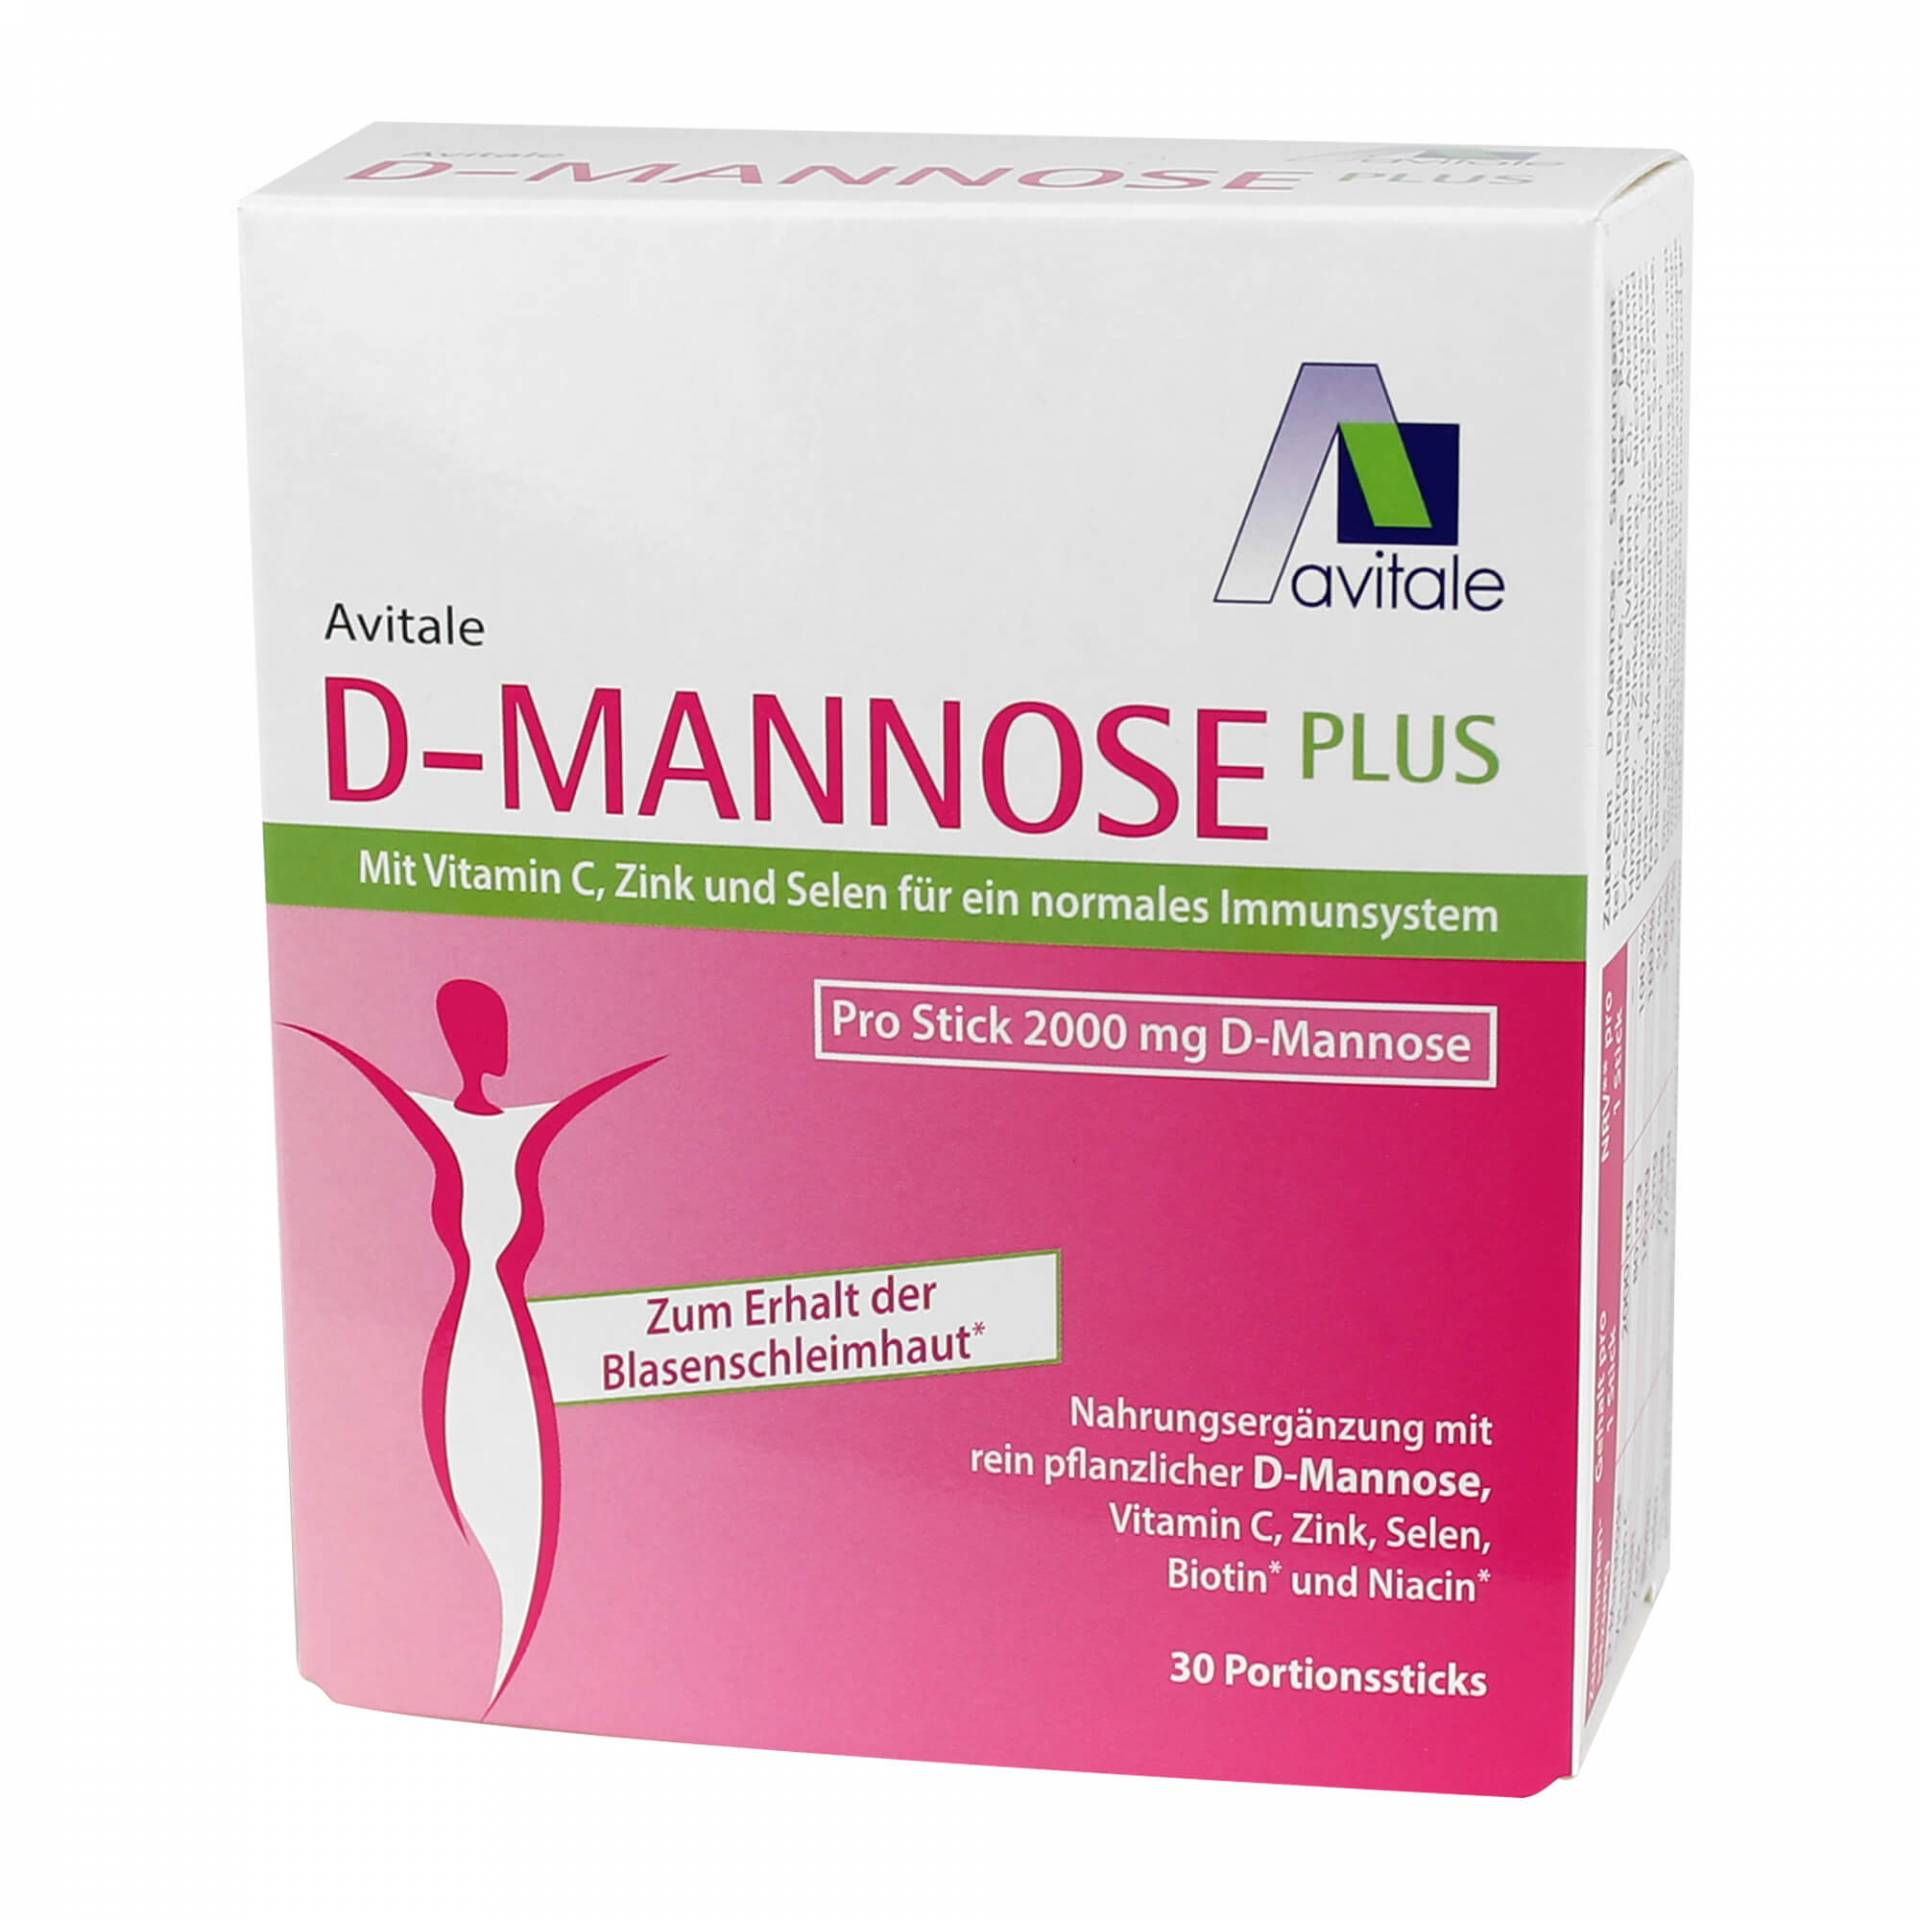 D-MANNOSE Plus 2000 mg Sticks von Avitale GmbH